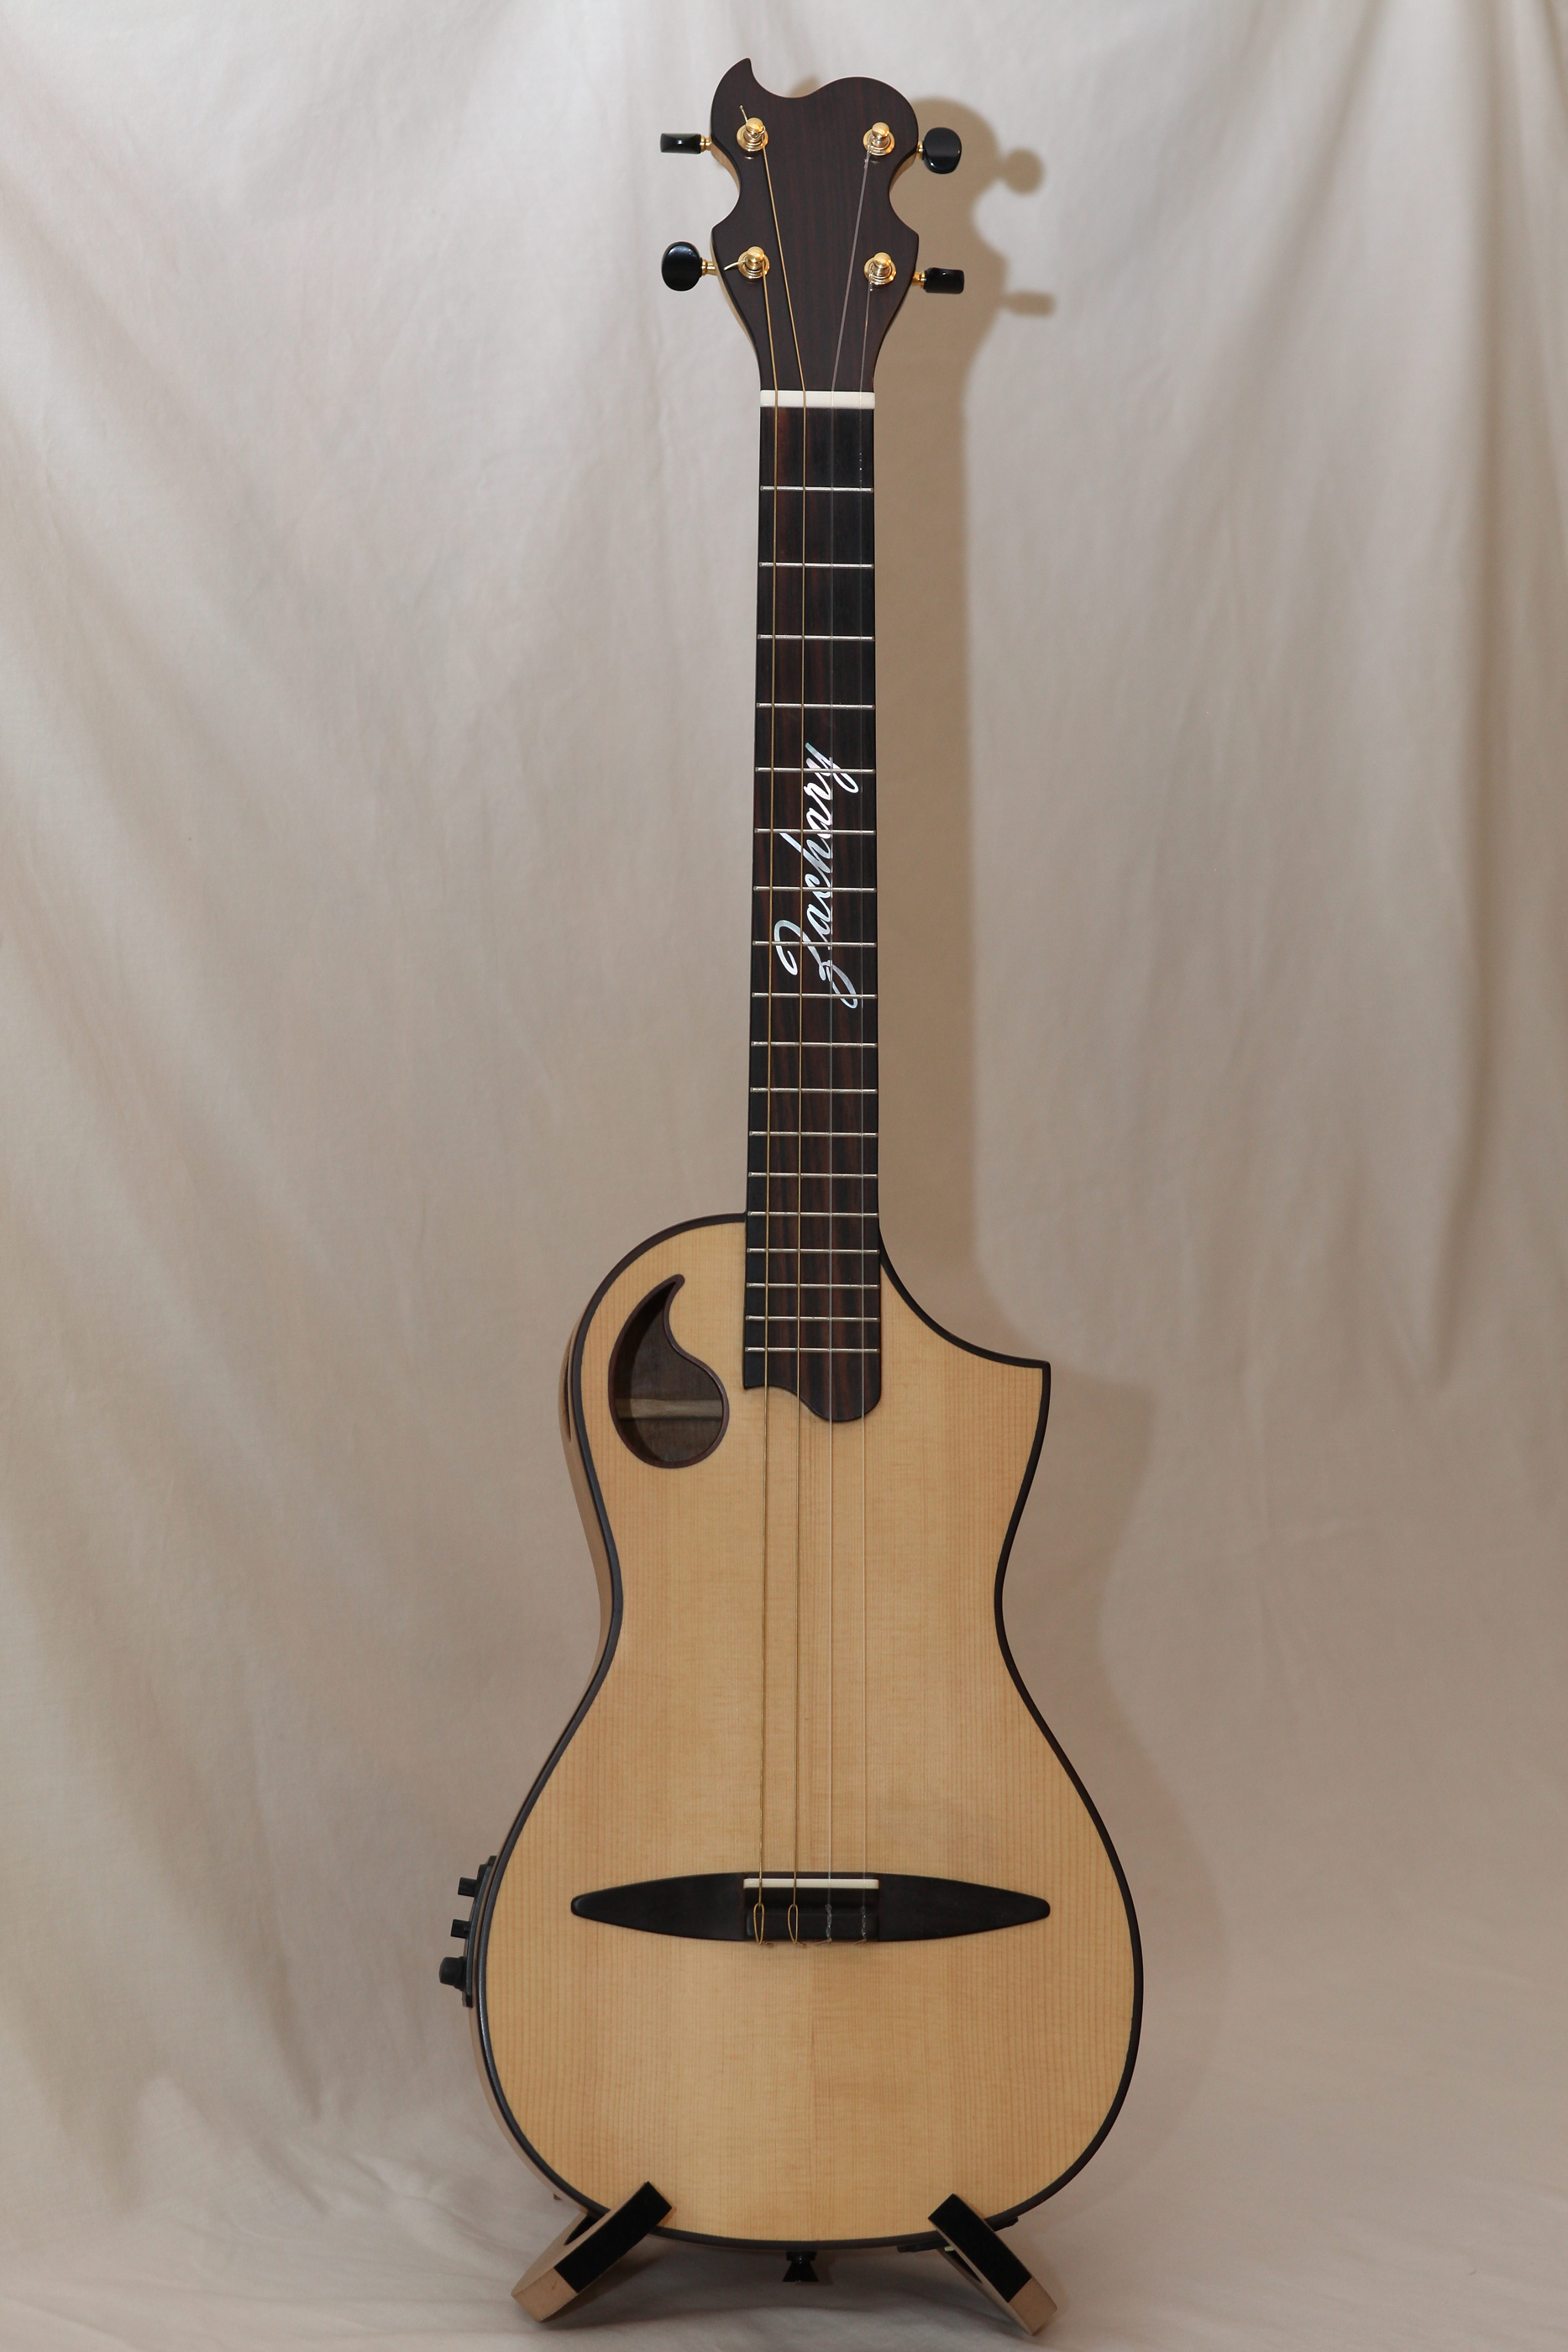 ZT Baritone Ukulele in maple